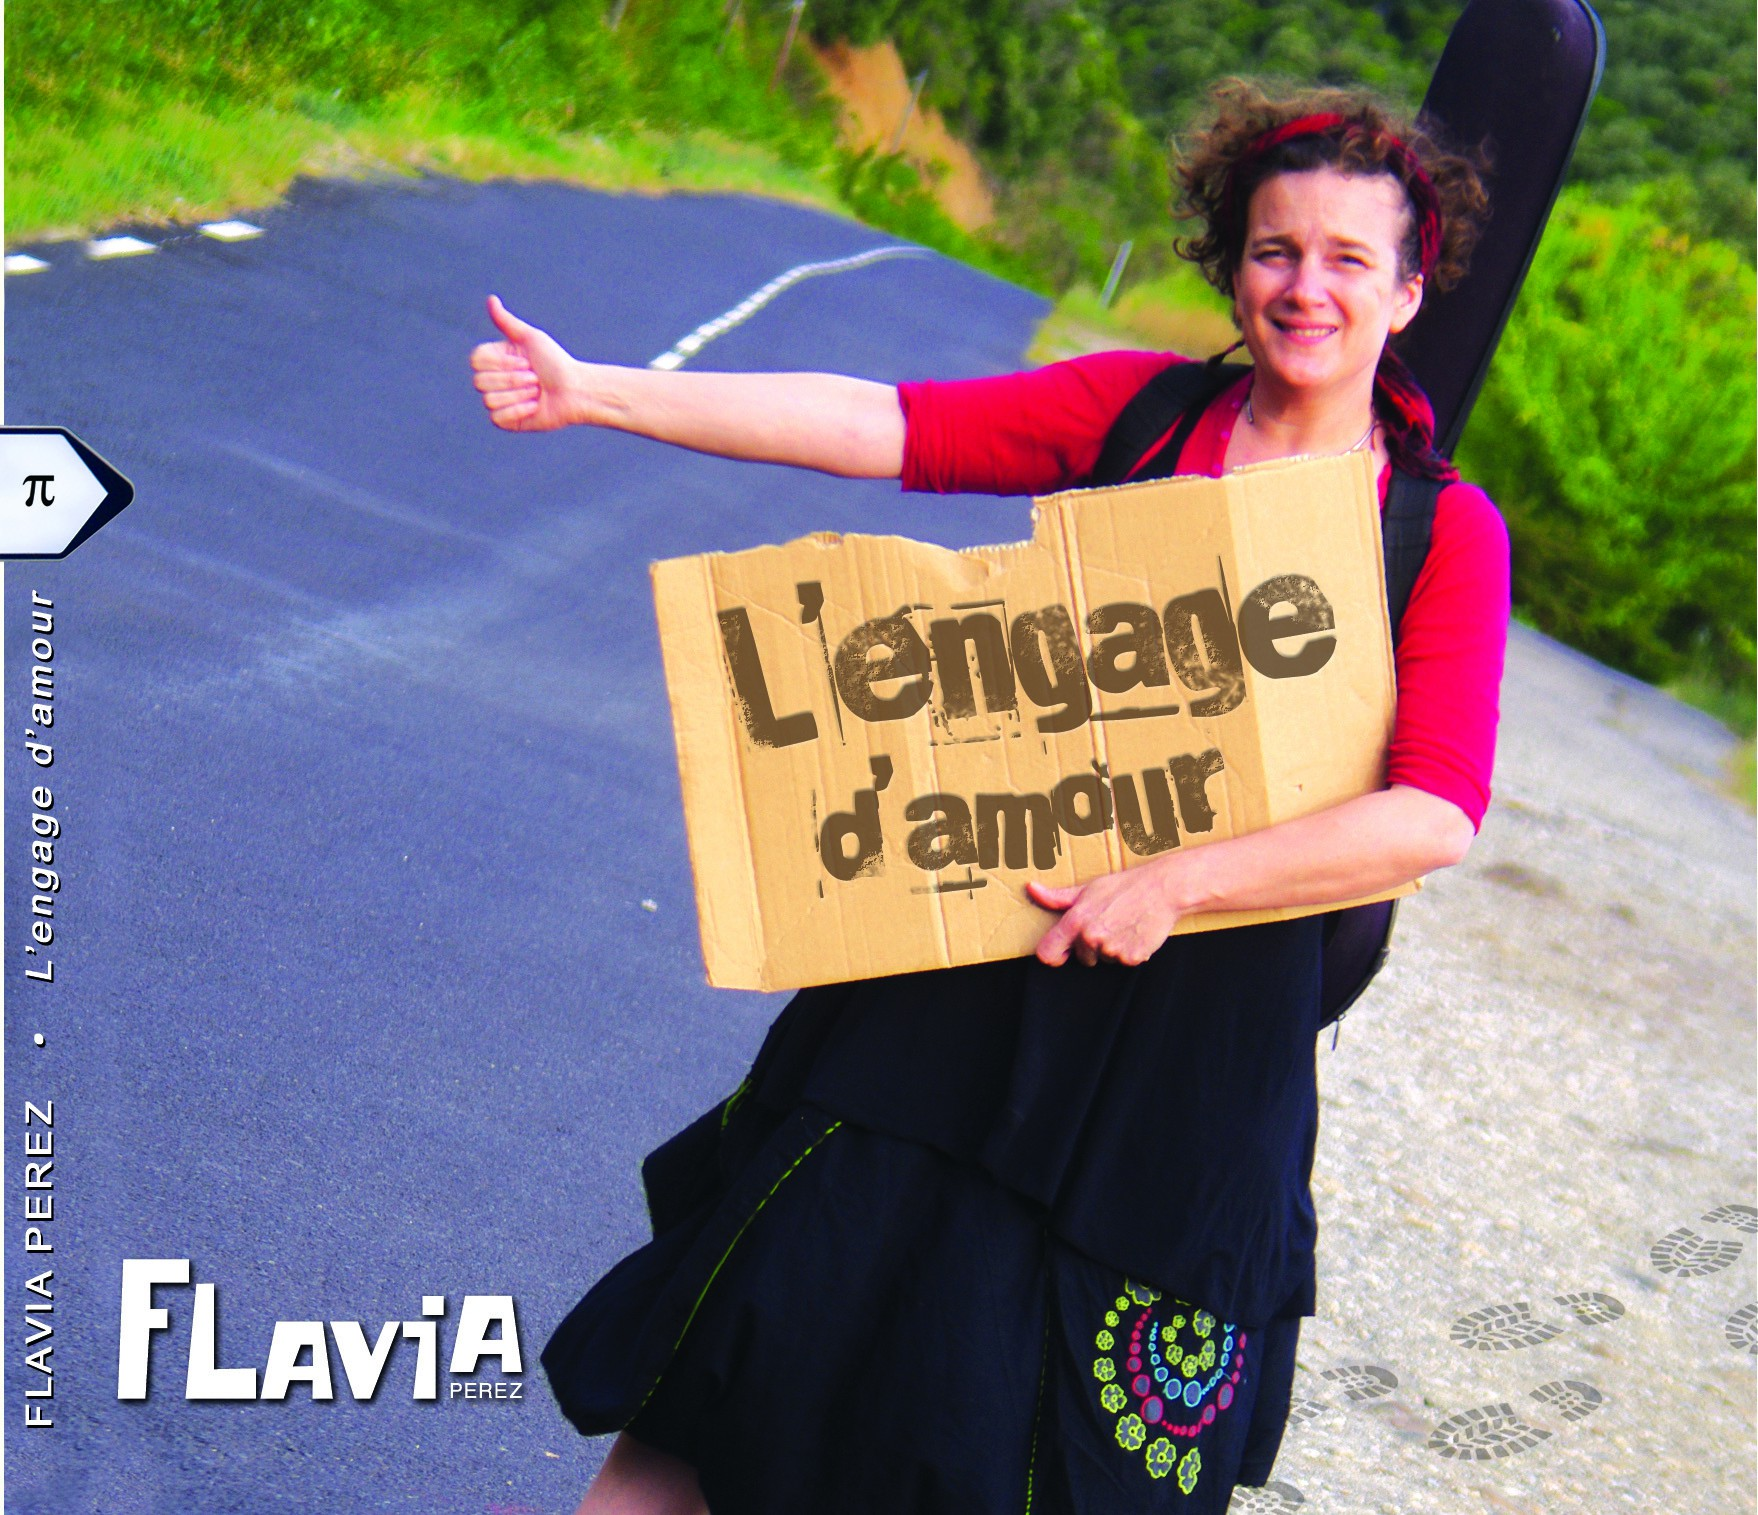 Flavia Perez : L'engage d'amour